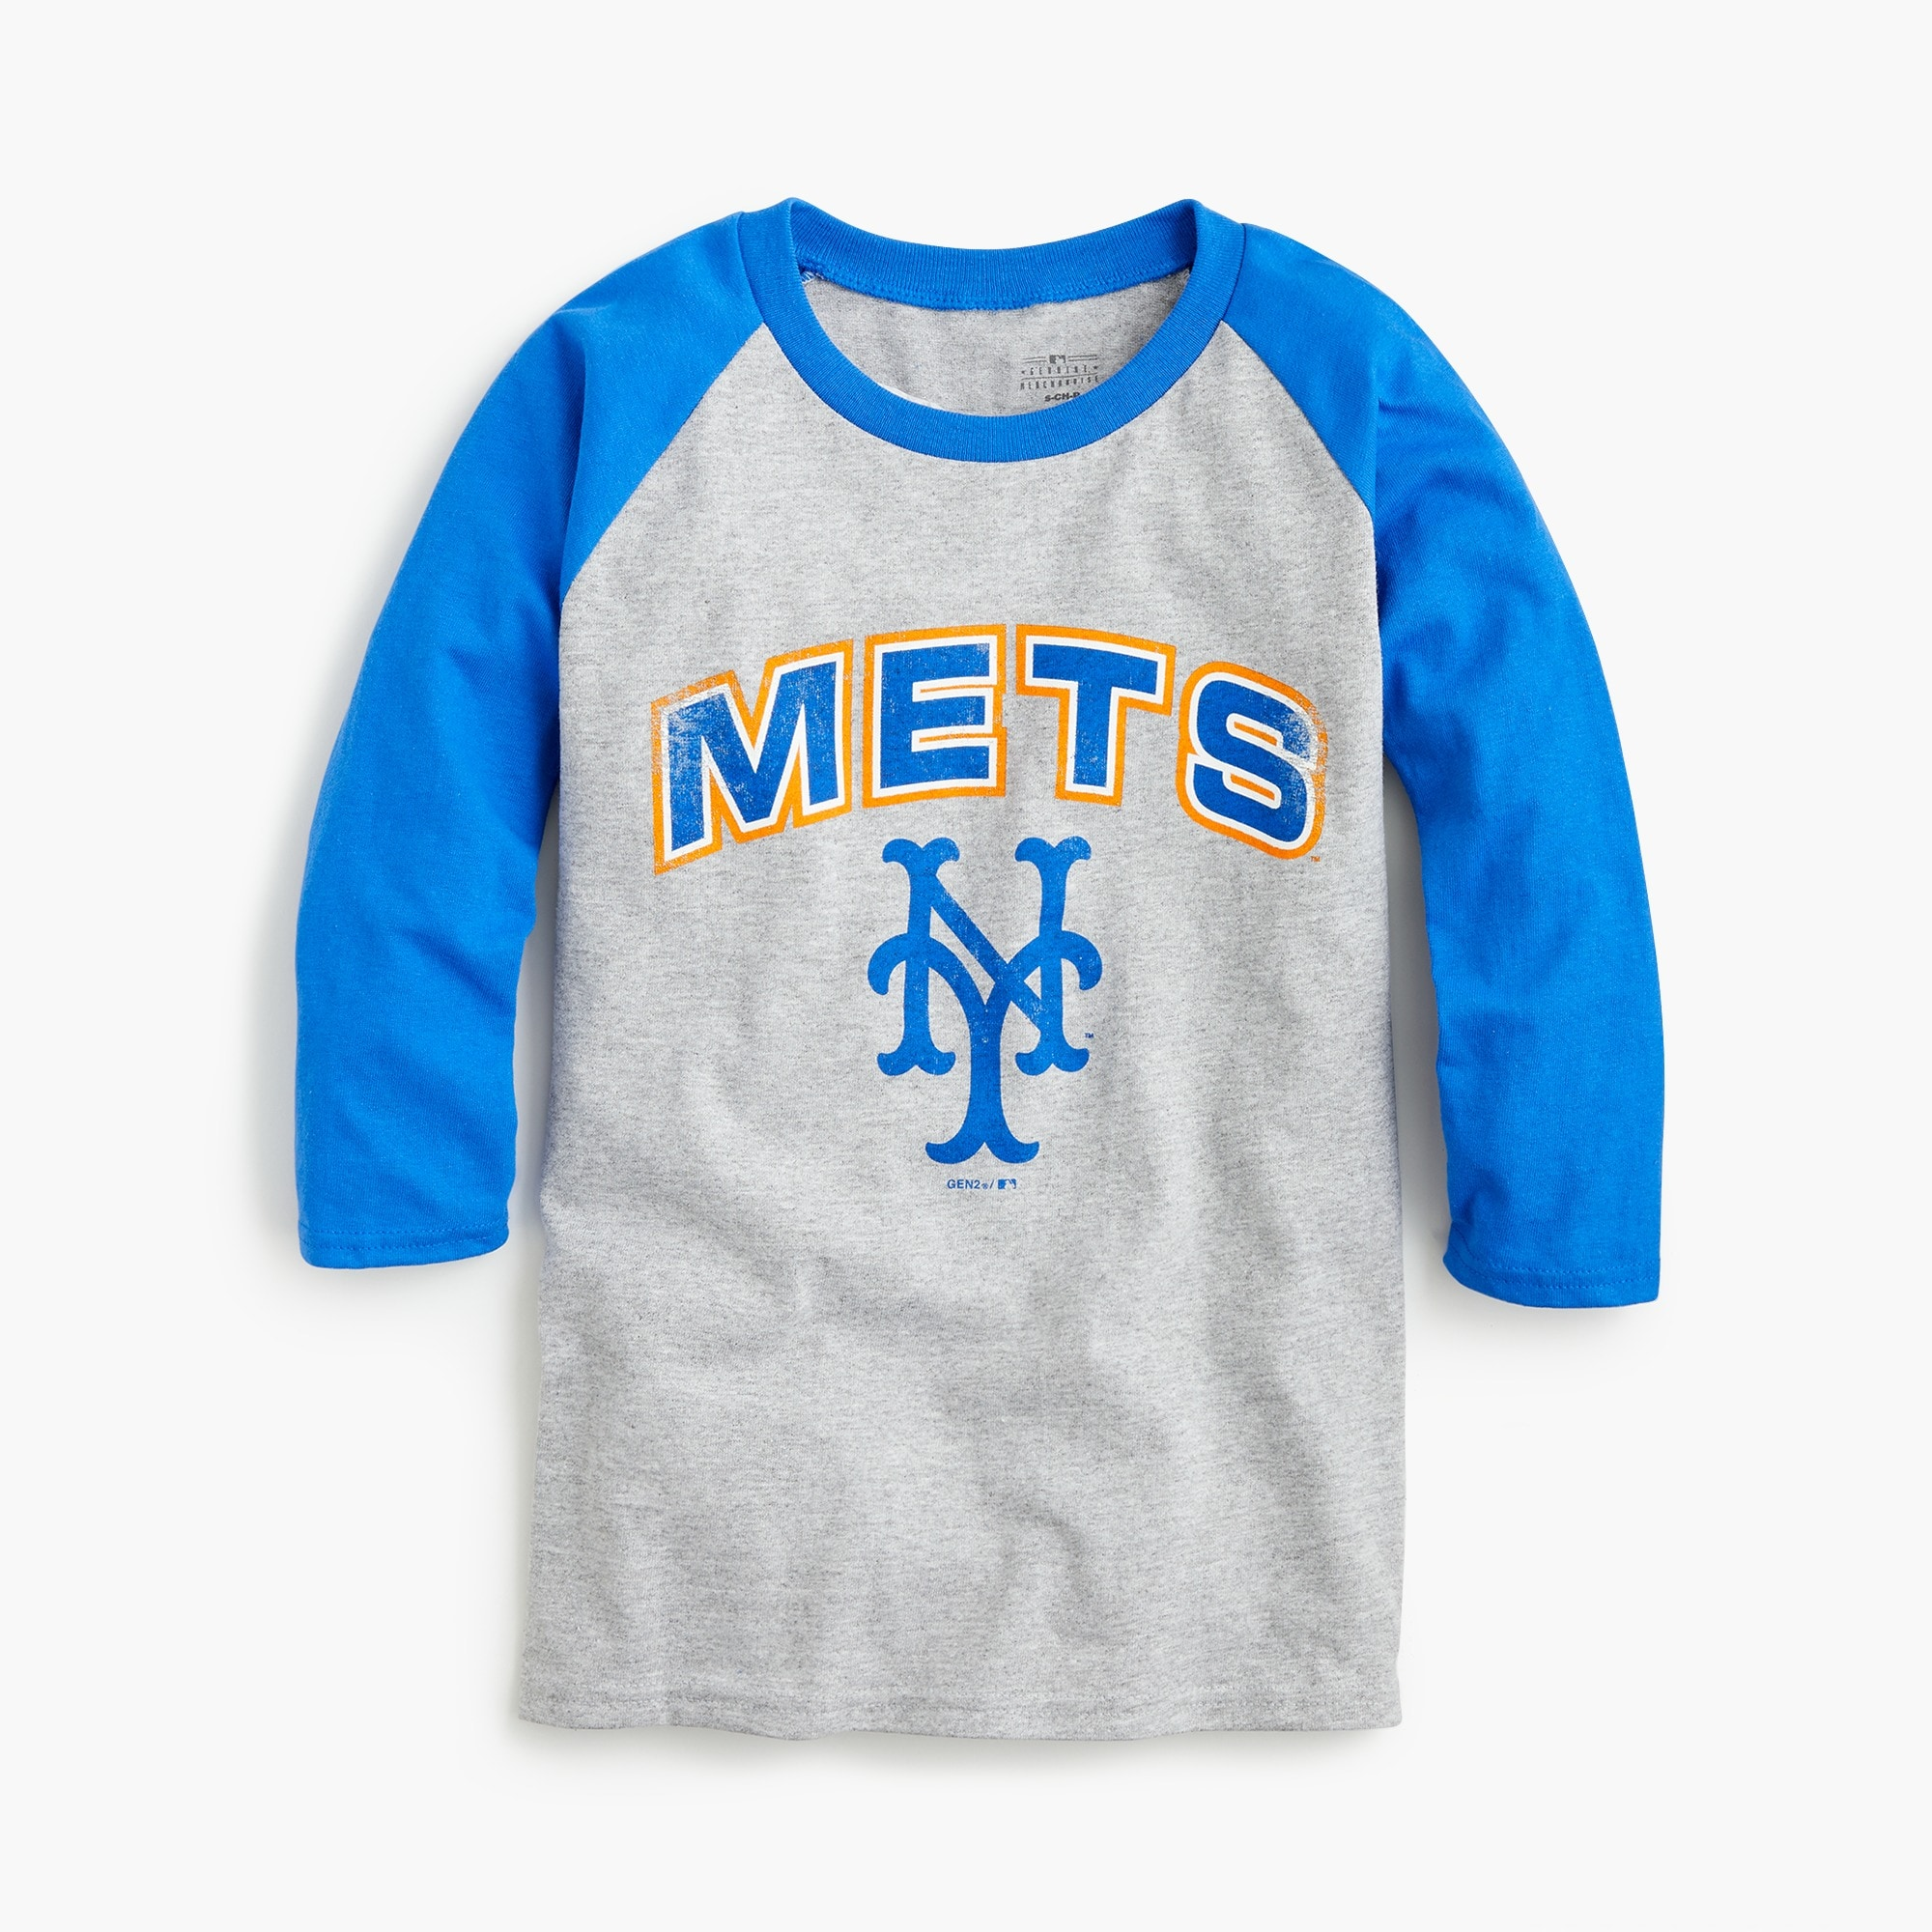 boys Kids' New York Mets baseball T-shirt